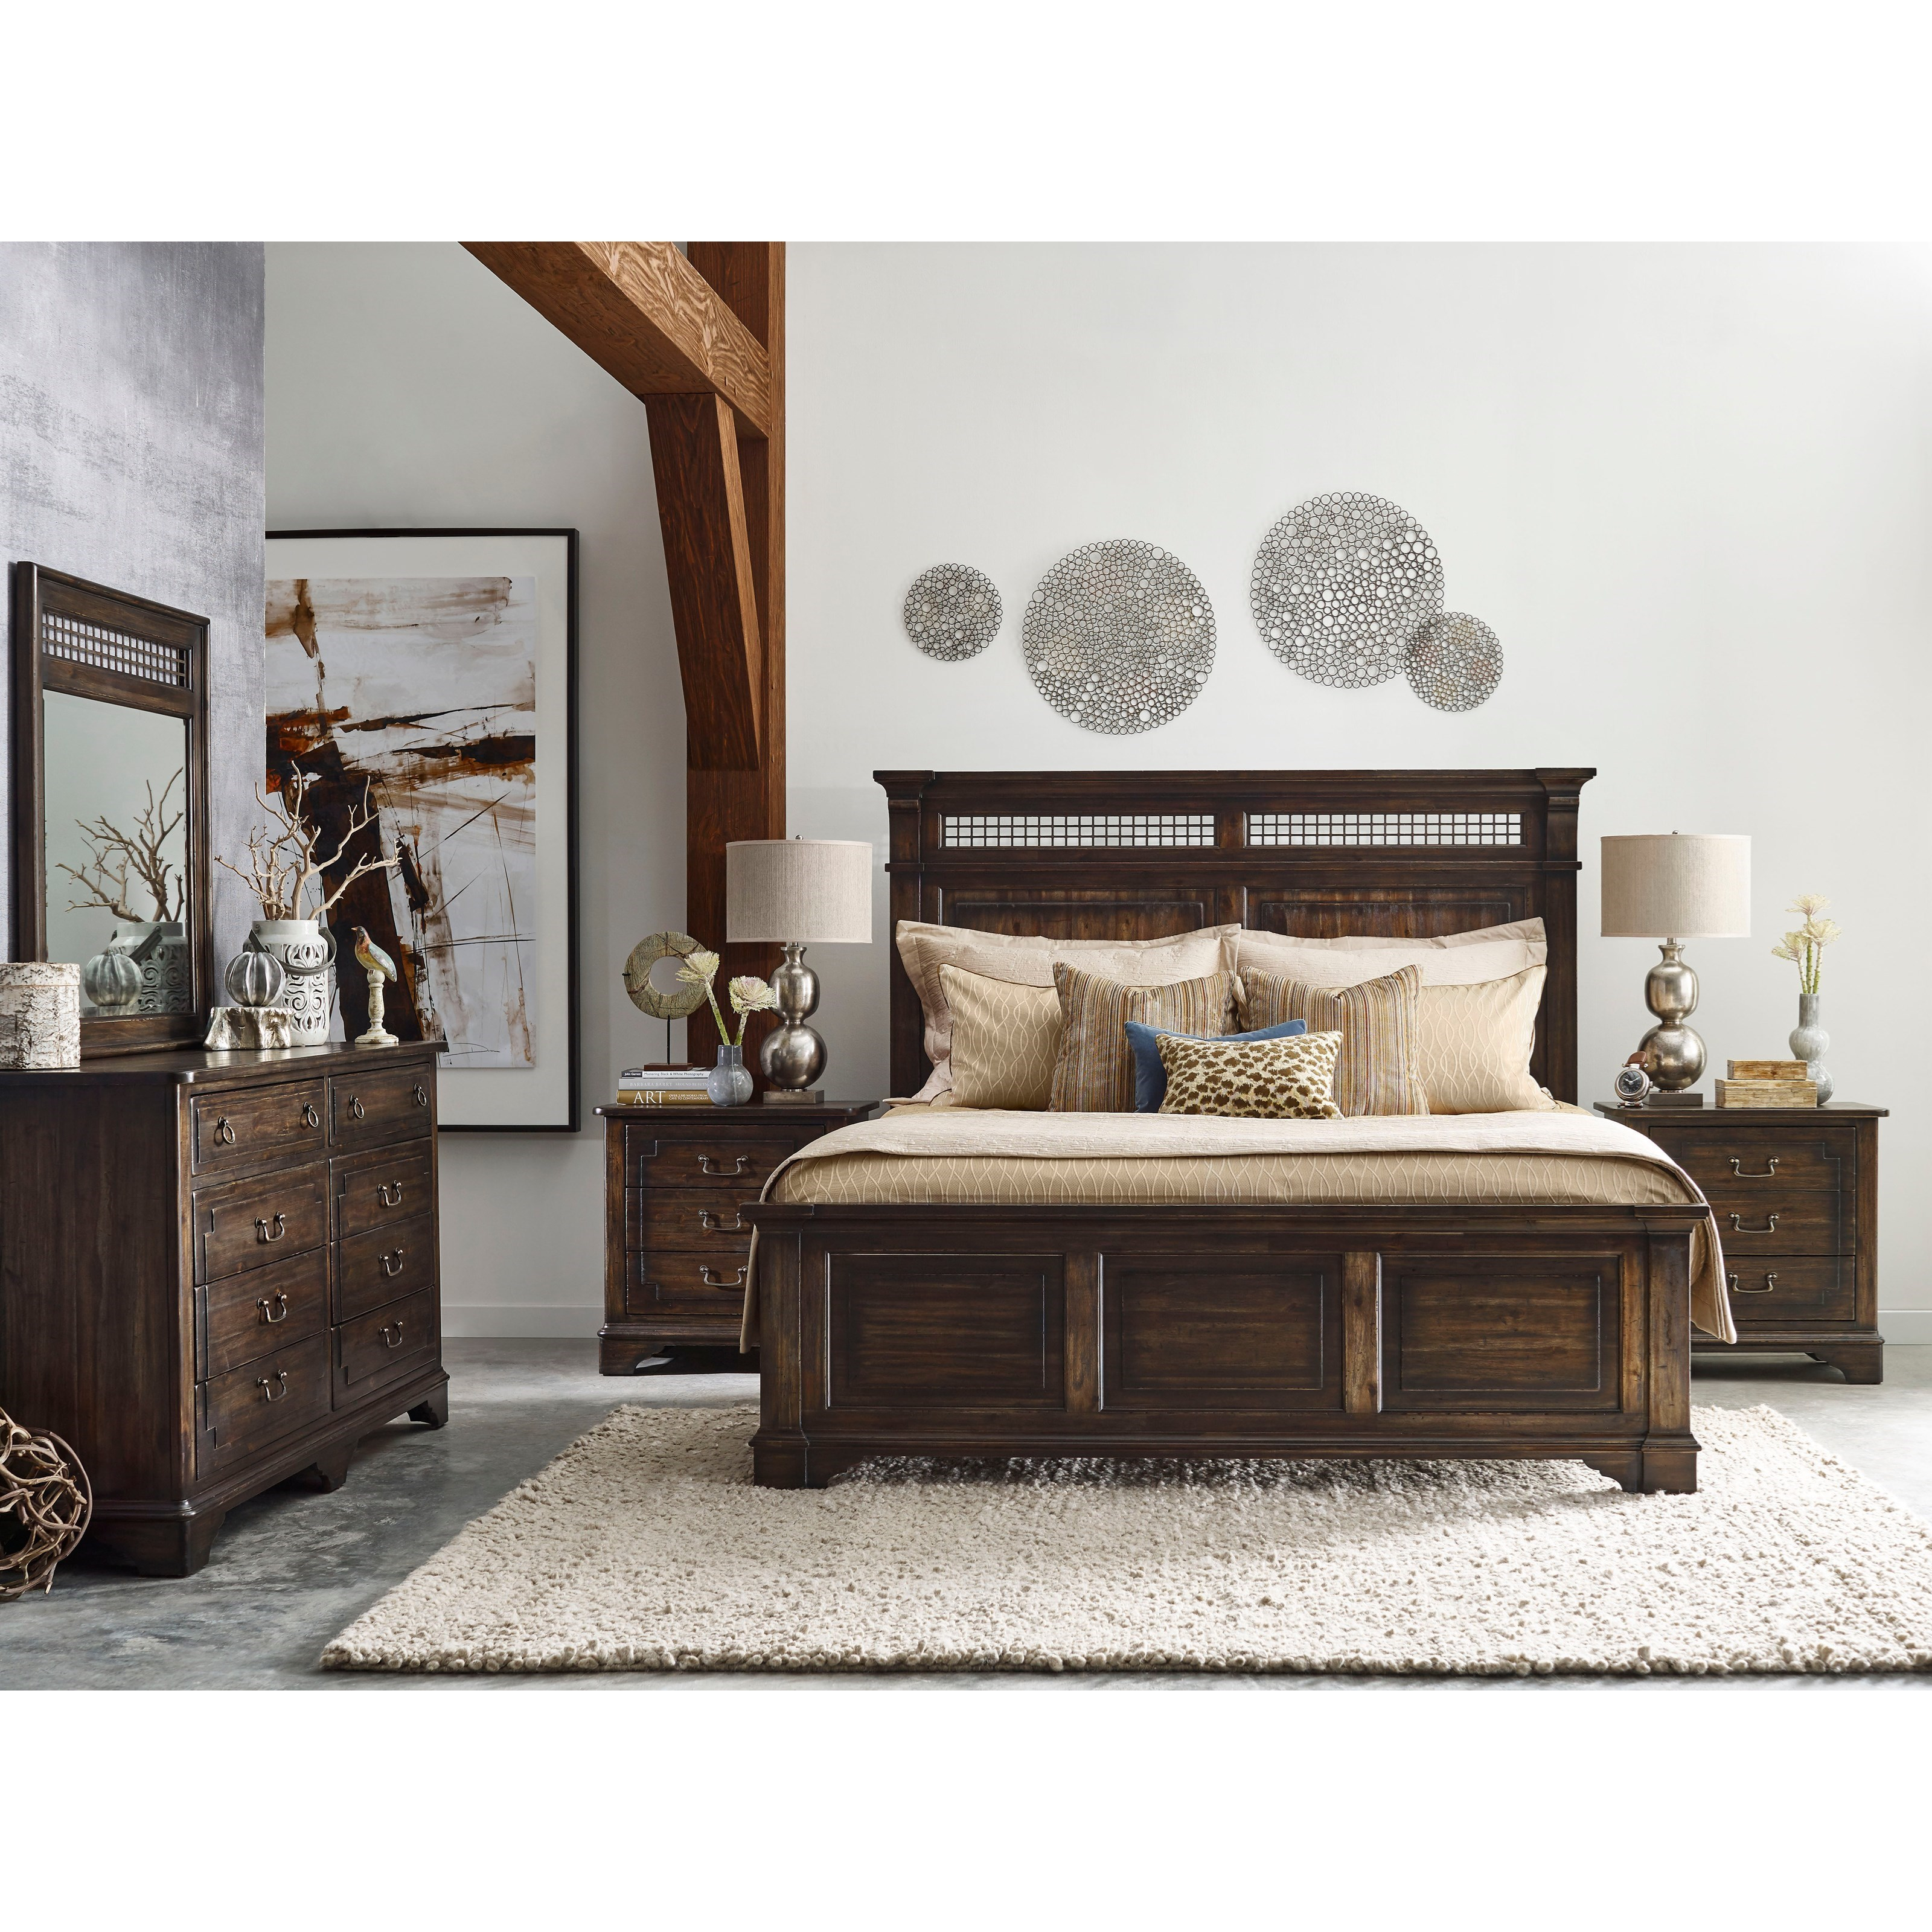 Kincaid Furniture Wildfire Queen Bedroom Group - Item Number: 86 Q Bedroom Group 4